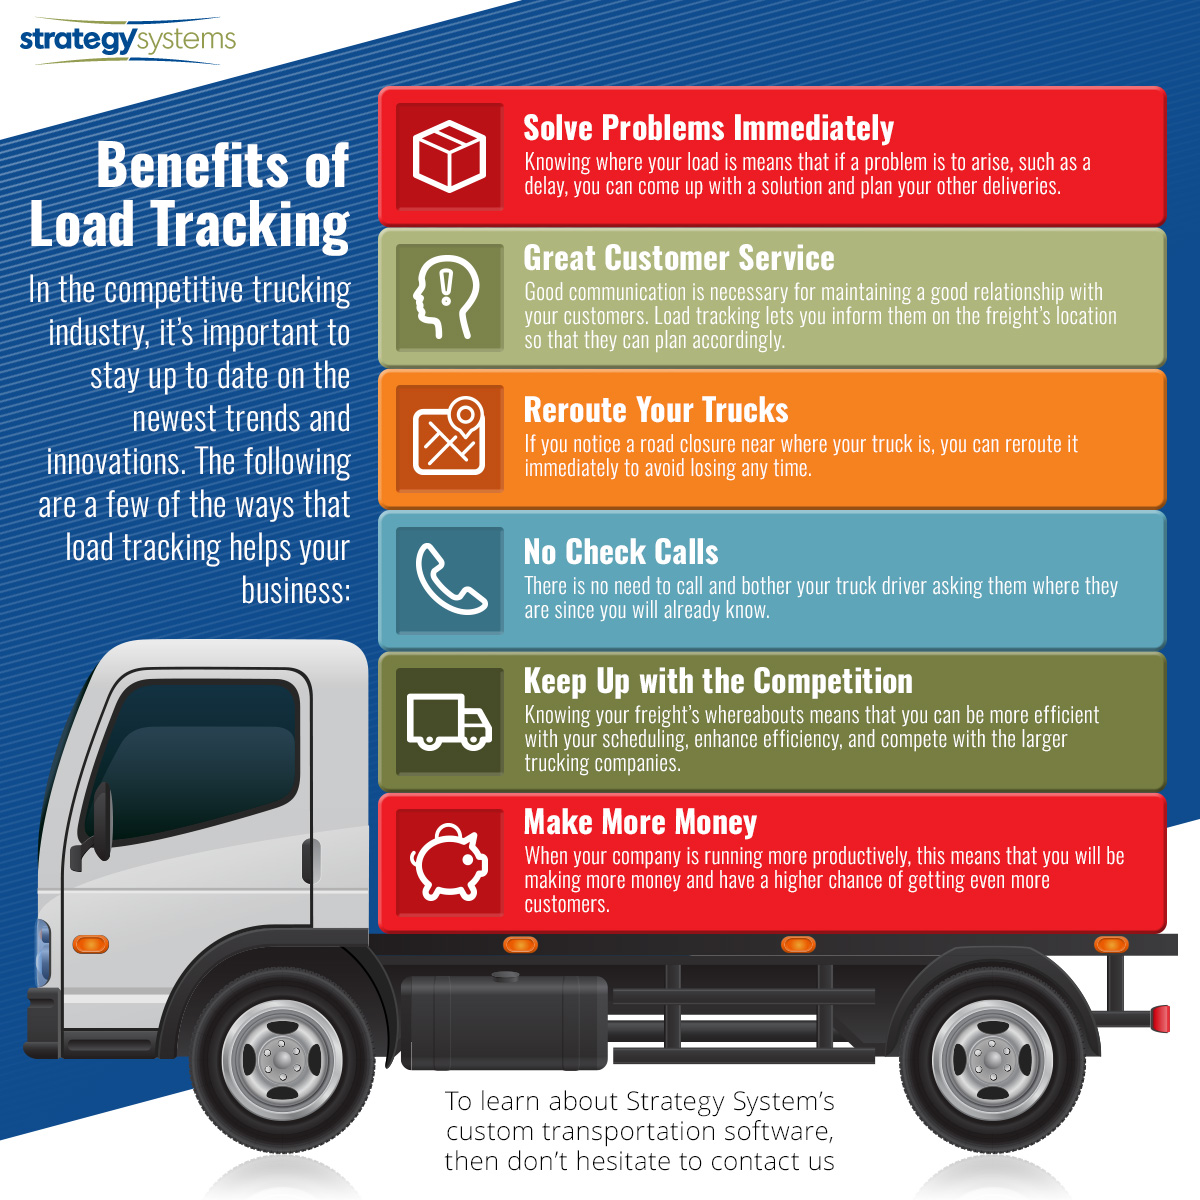 Transportation Software - The Importance of Load Tracking